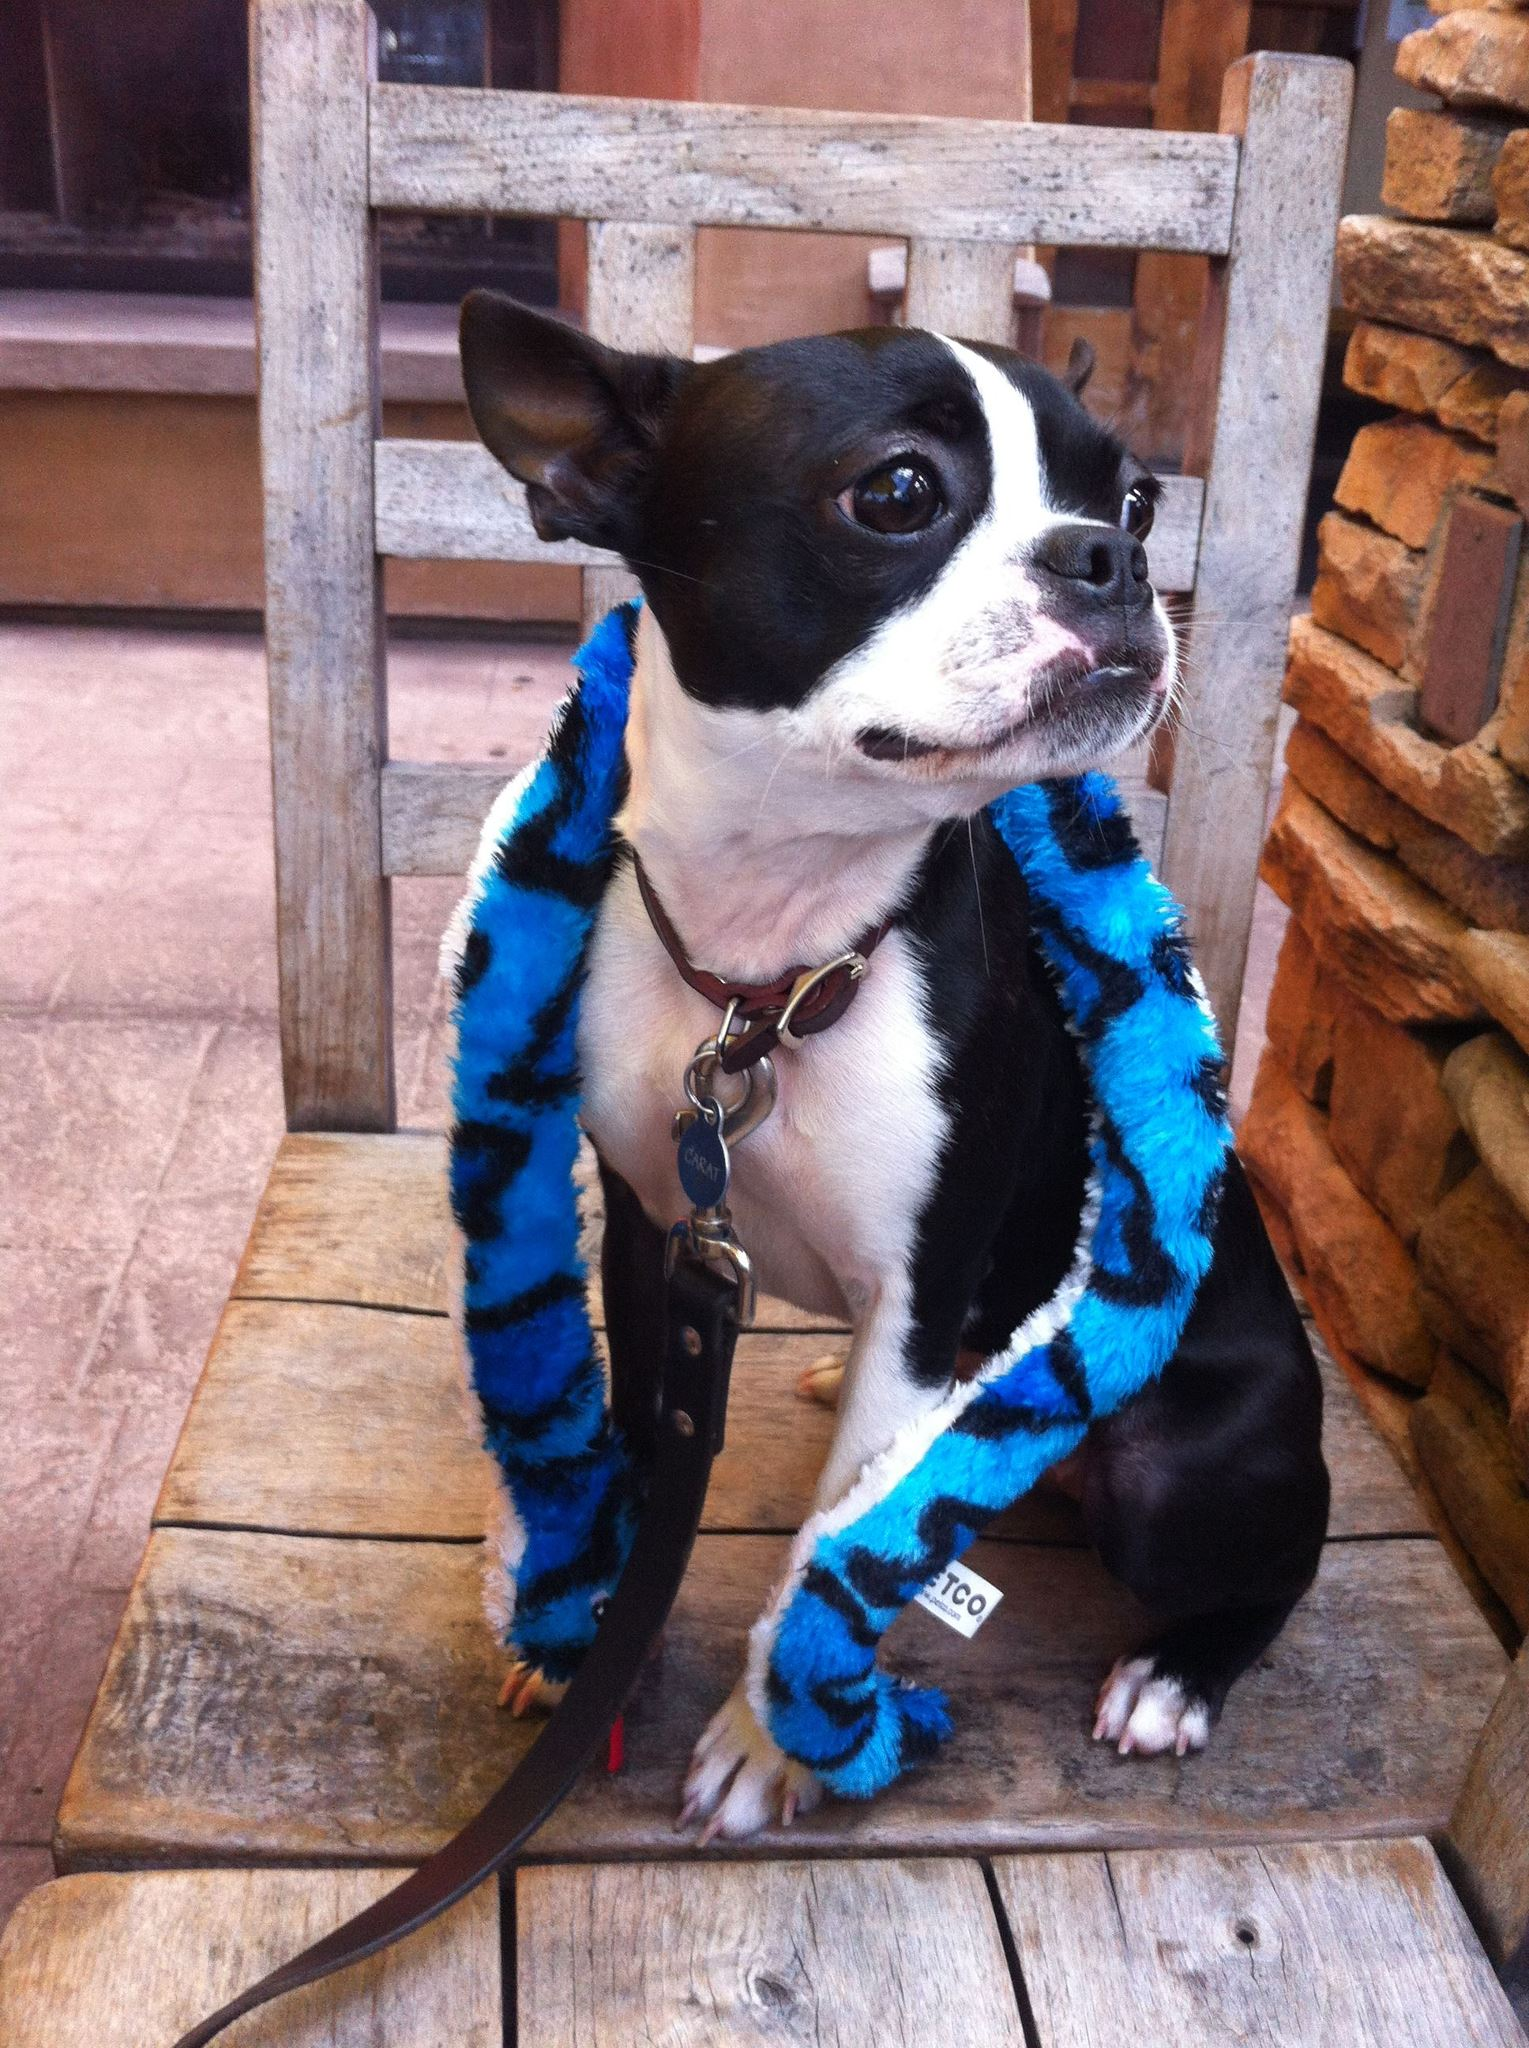 Peepers the Boston Terrier as Britney Spears